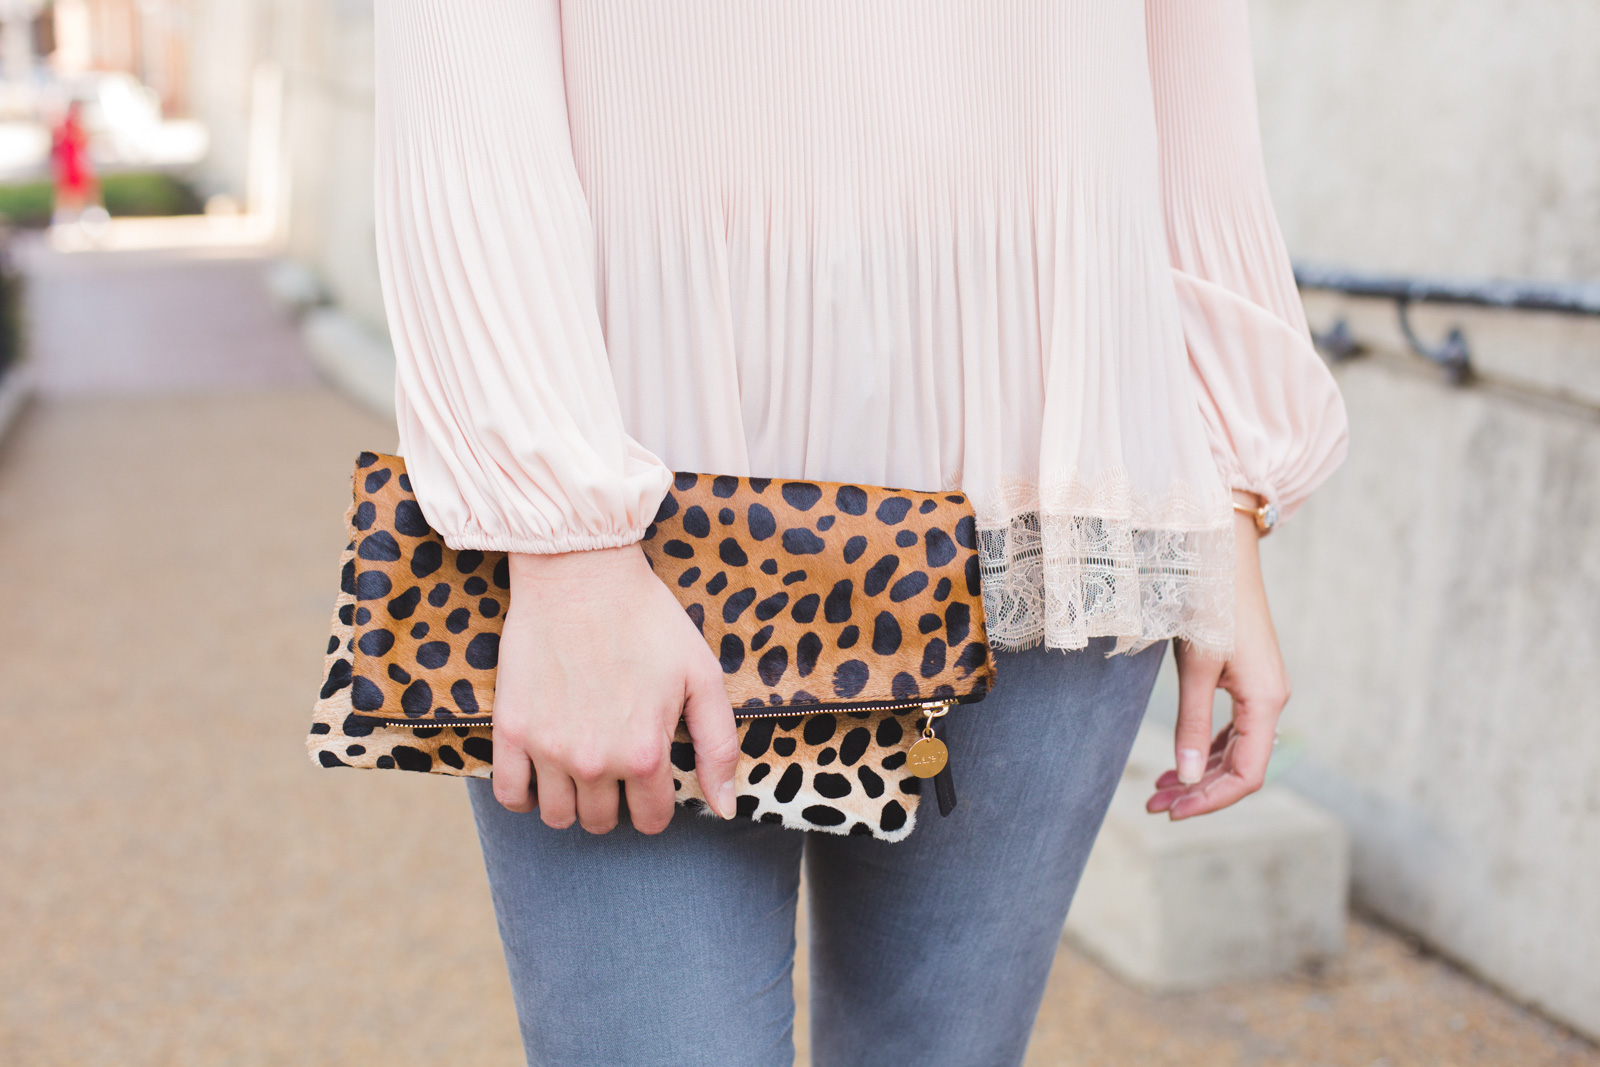 cheetah clutch outfit for Spring - Click through for more cute Spring outfits or to shop this look. ww.bylaurenm.com